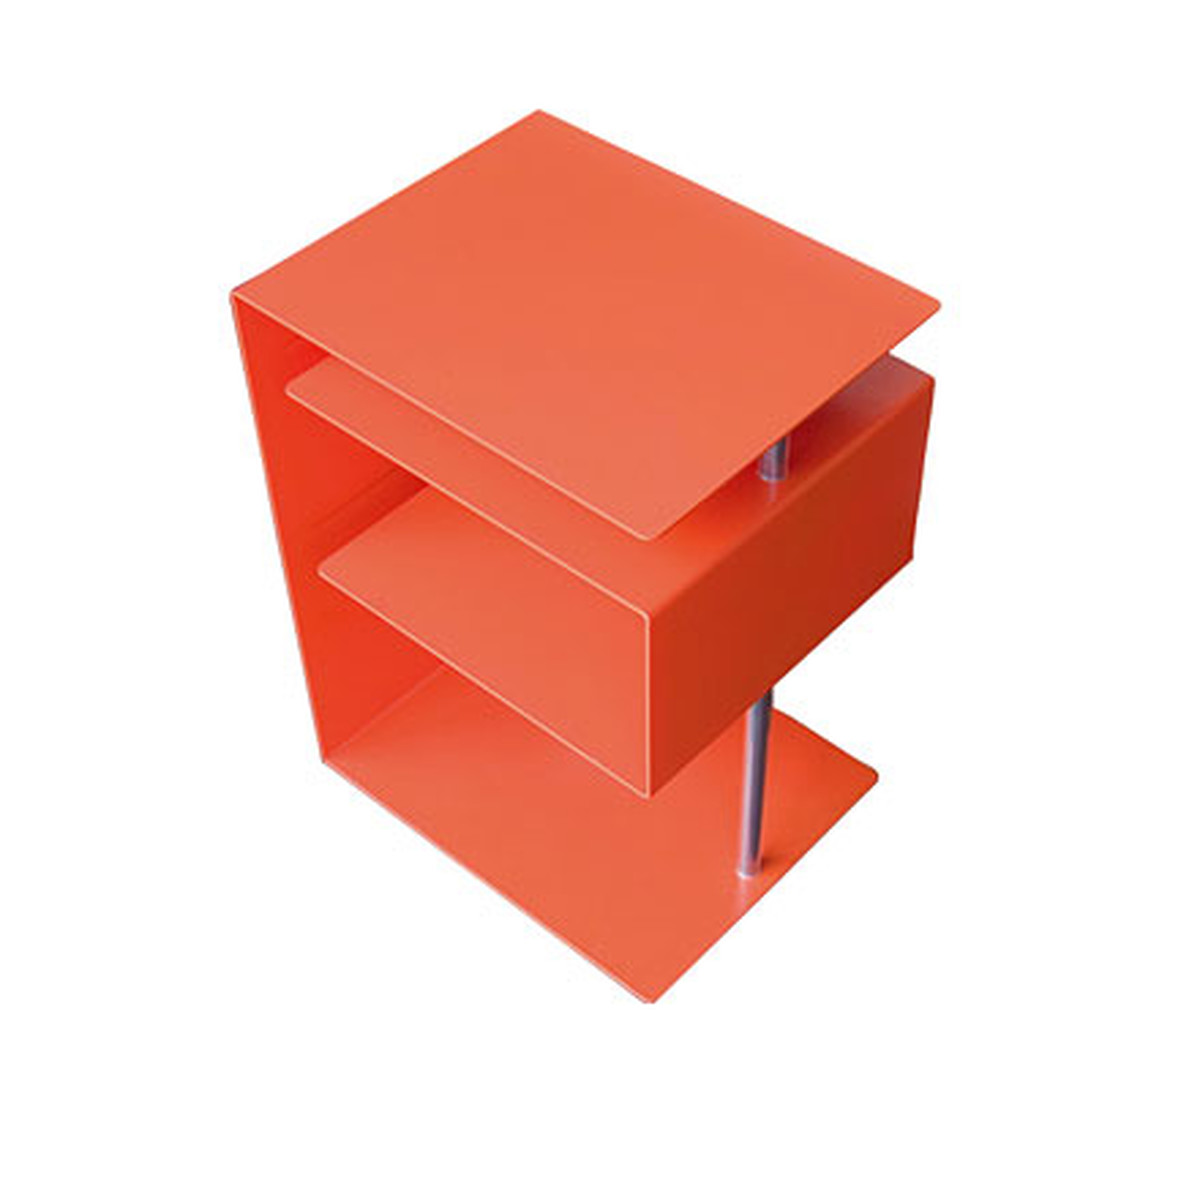 Radius Design X Centric Tisch Orange Wei 223 T 37 H 50 B